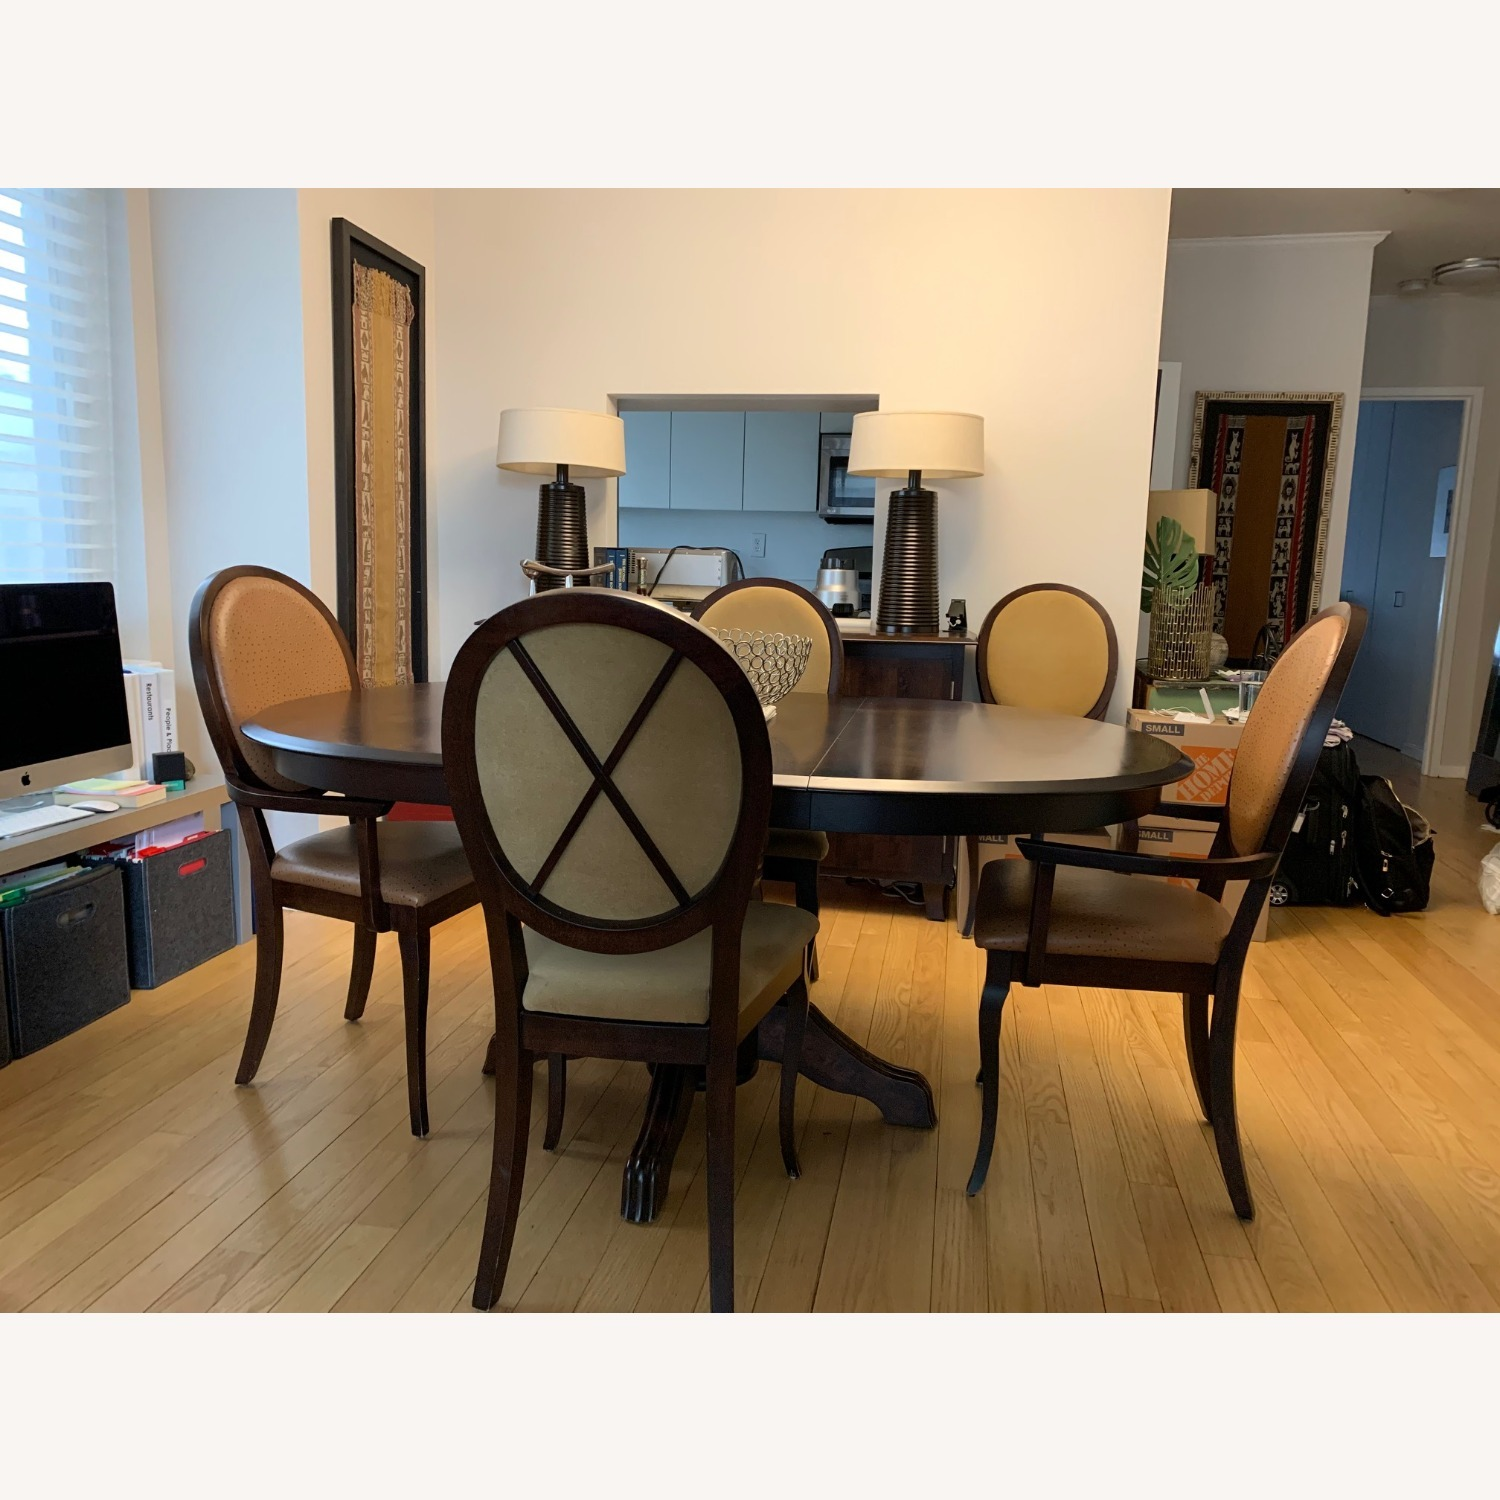 Expandable Dining Room Table w/ Six Chairs - image-0